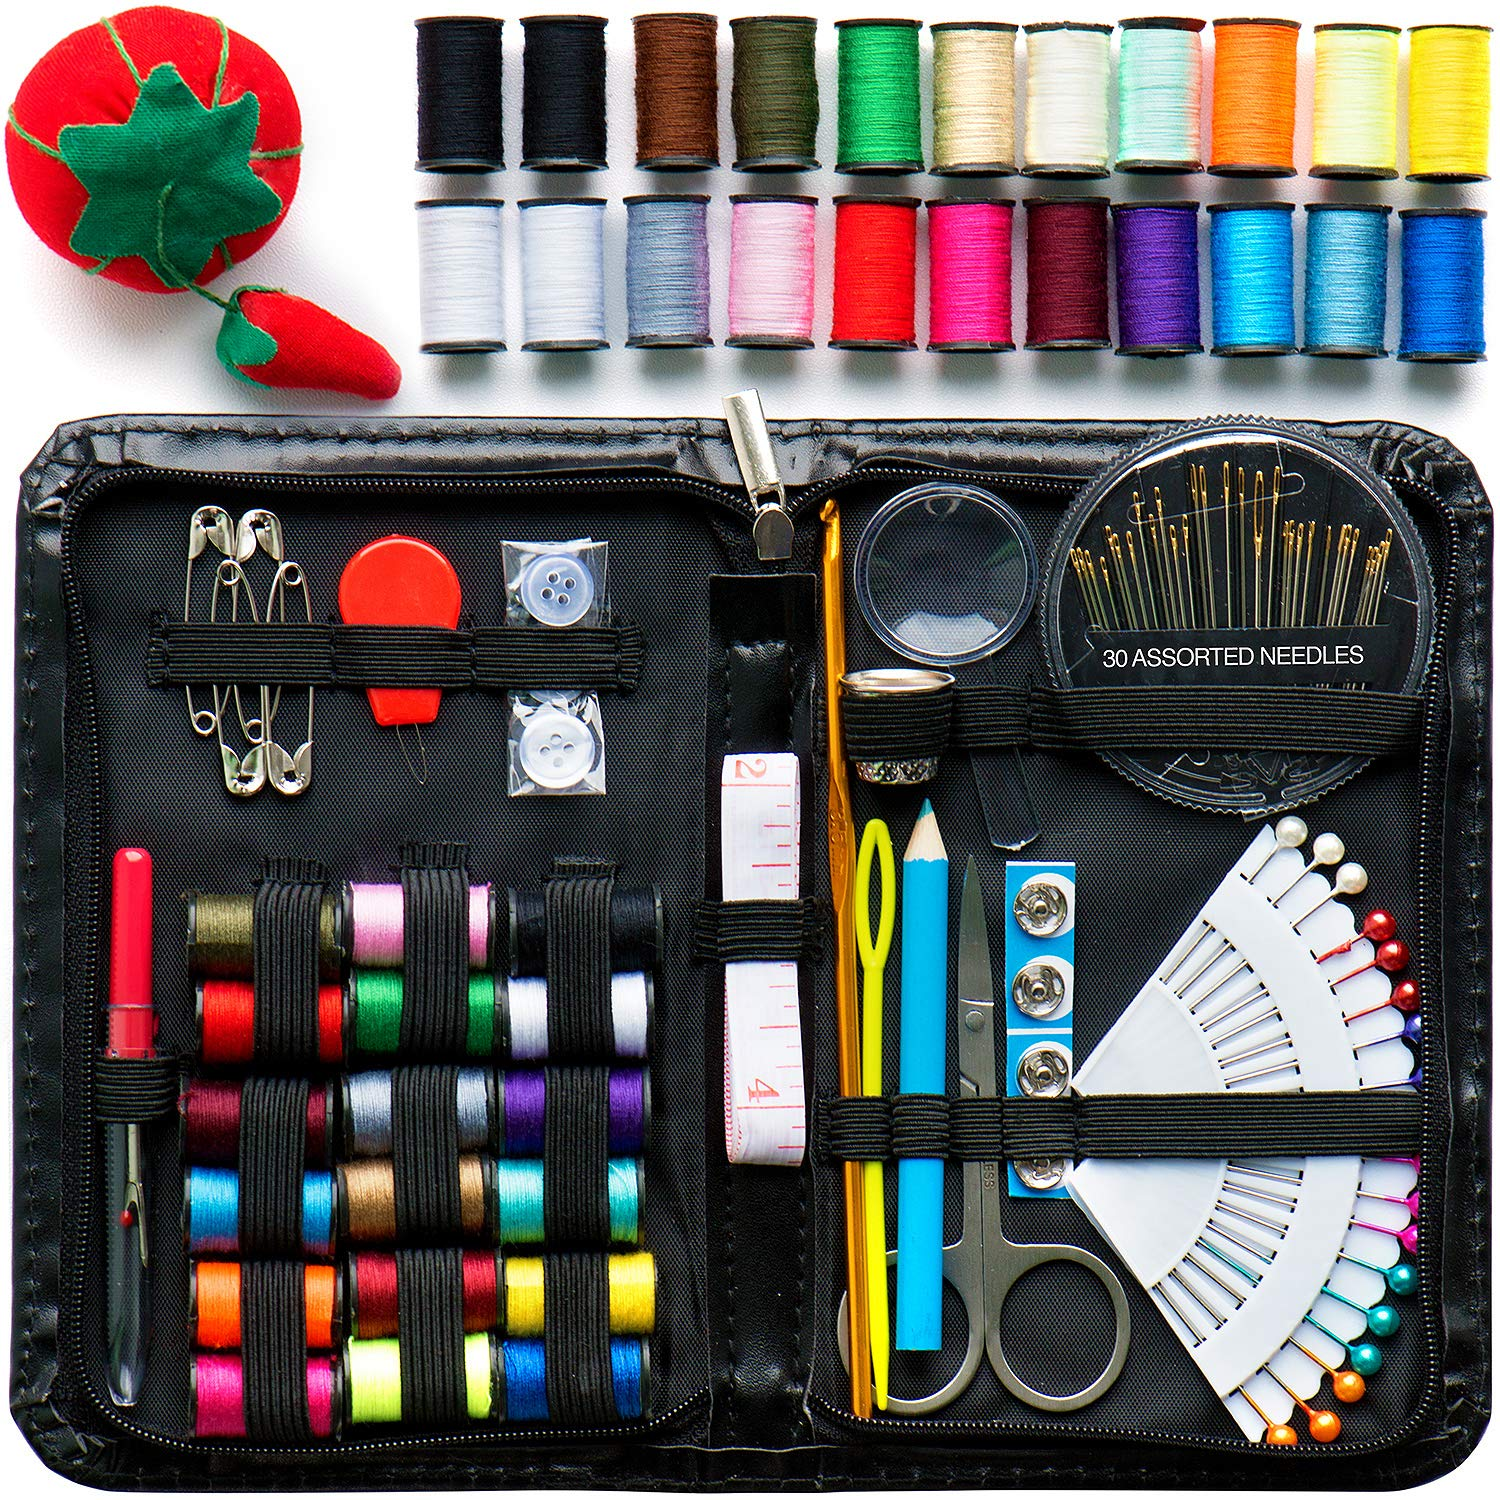 All items free shipping Evergreen Art Supply Sewing Quantity limited Kit Includes 40 of Al Spools Thread